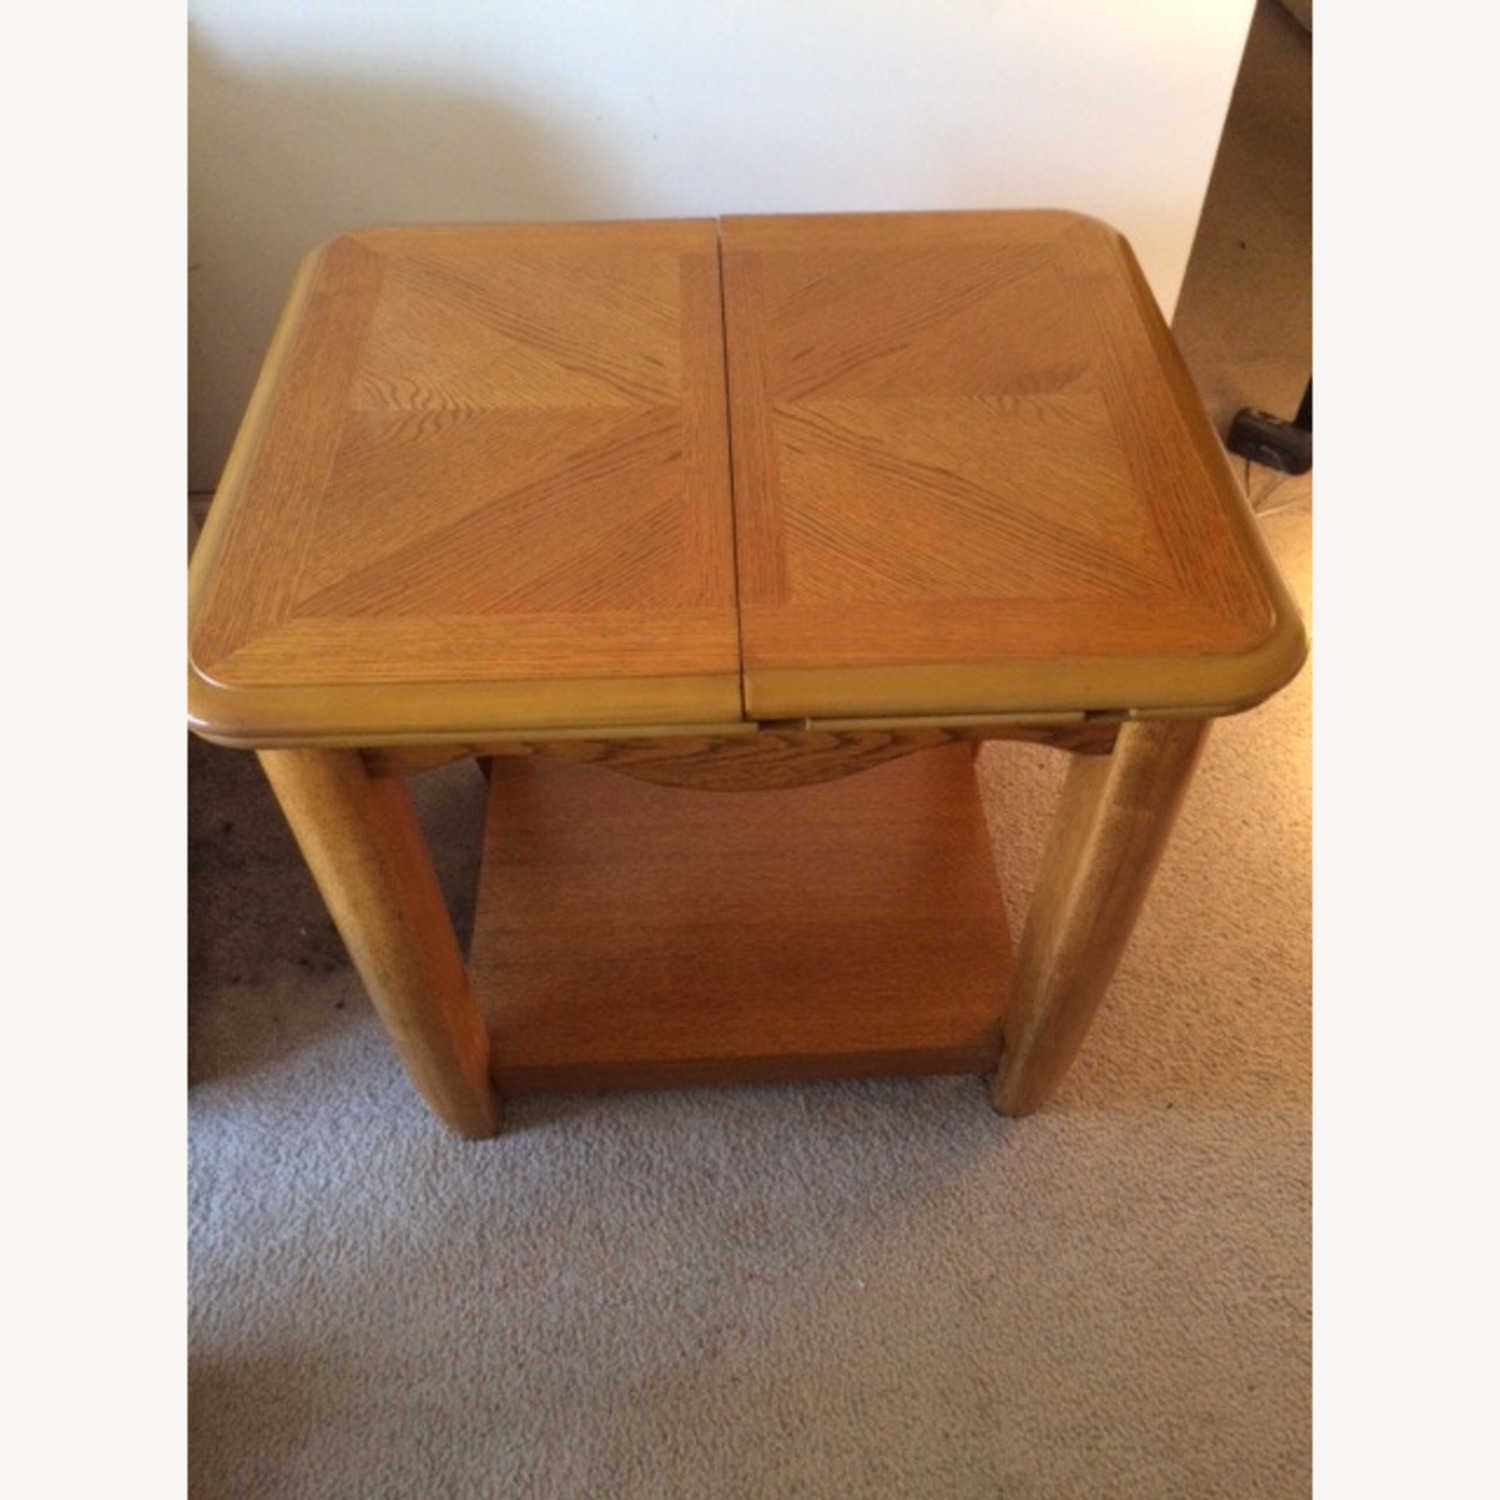 Oak End Table/Side Table with Sliding Panel - image-1